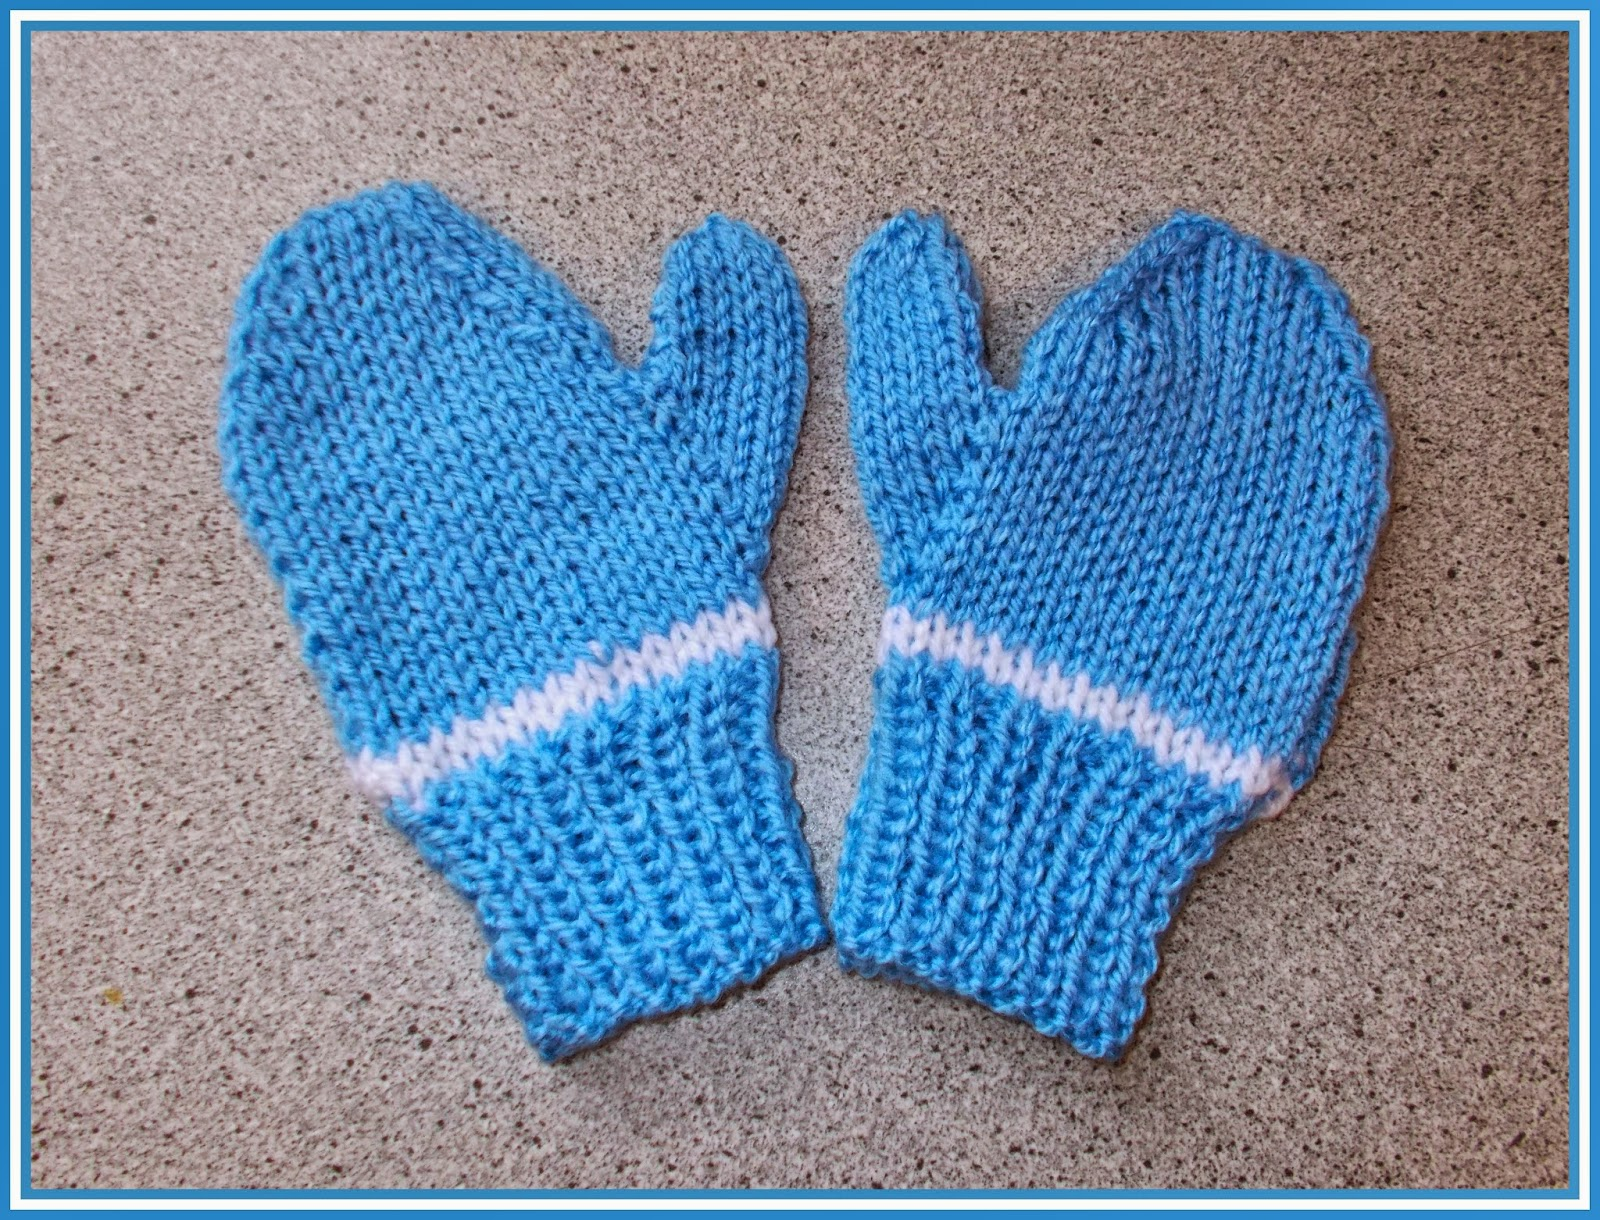 Knitting Pattern For Mittens Using Two Needles : mariannas lazy daisy days: Easy 2-needle toddler and child mittens - boy...